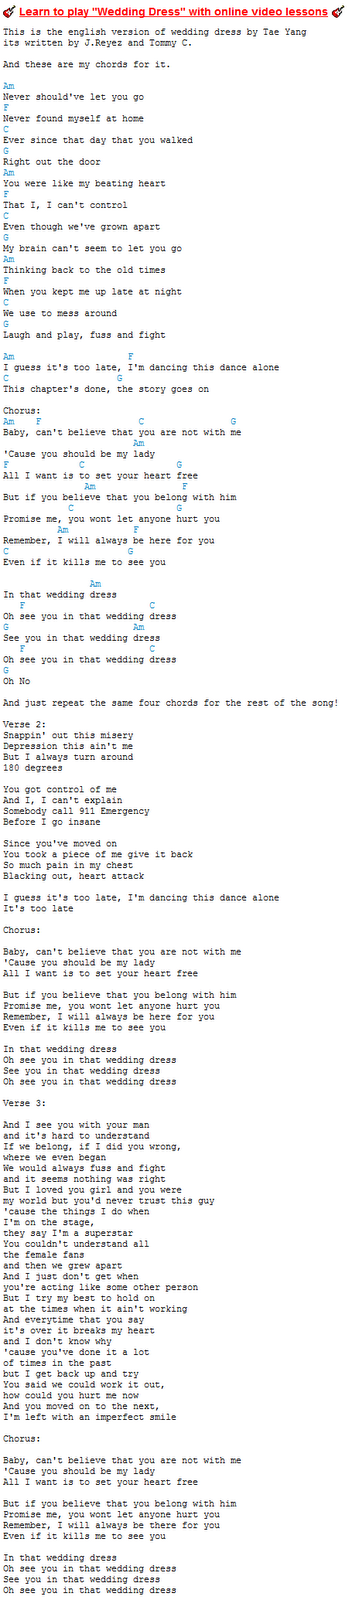 Gen-ed goal...(learning guitar): first song i ever try by, kpop artist taeyang (wedding dress)